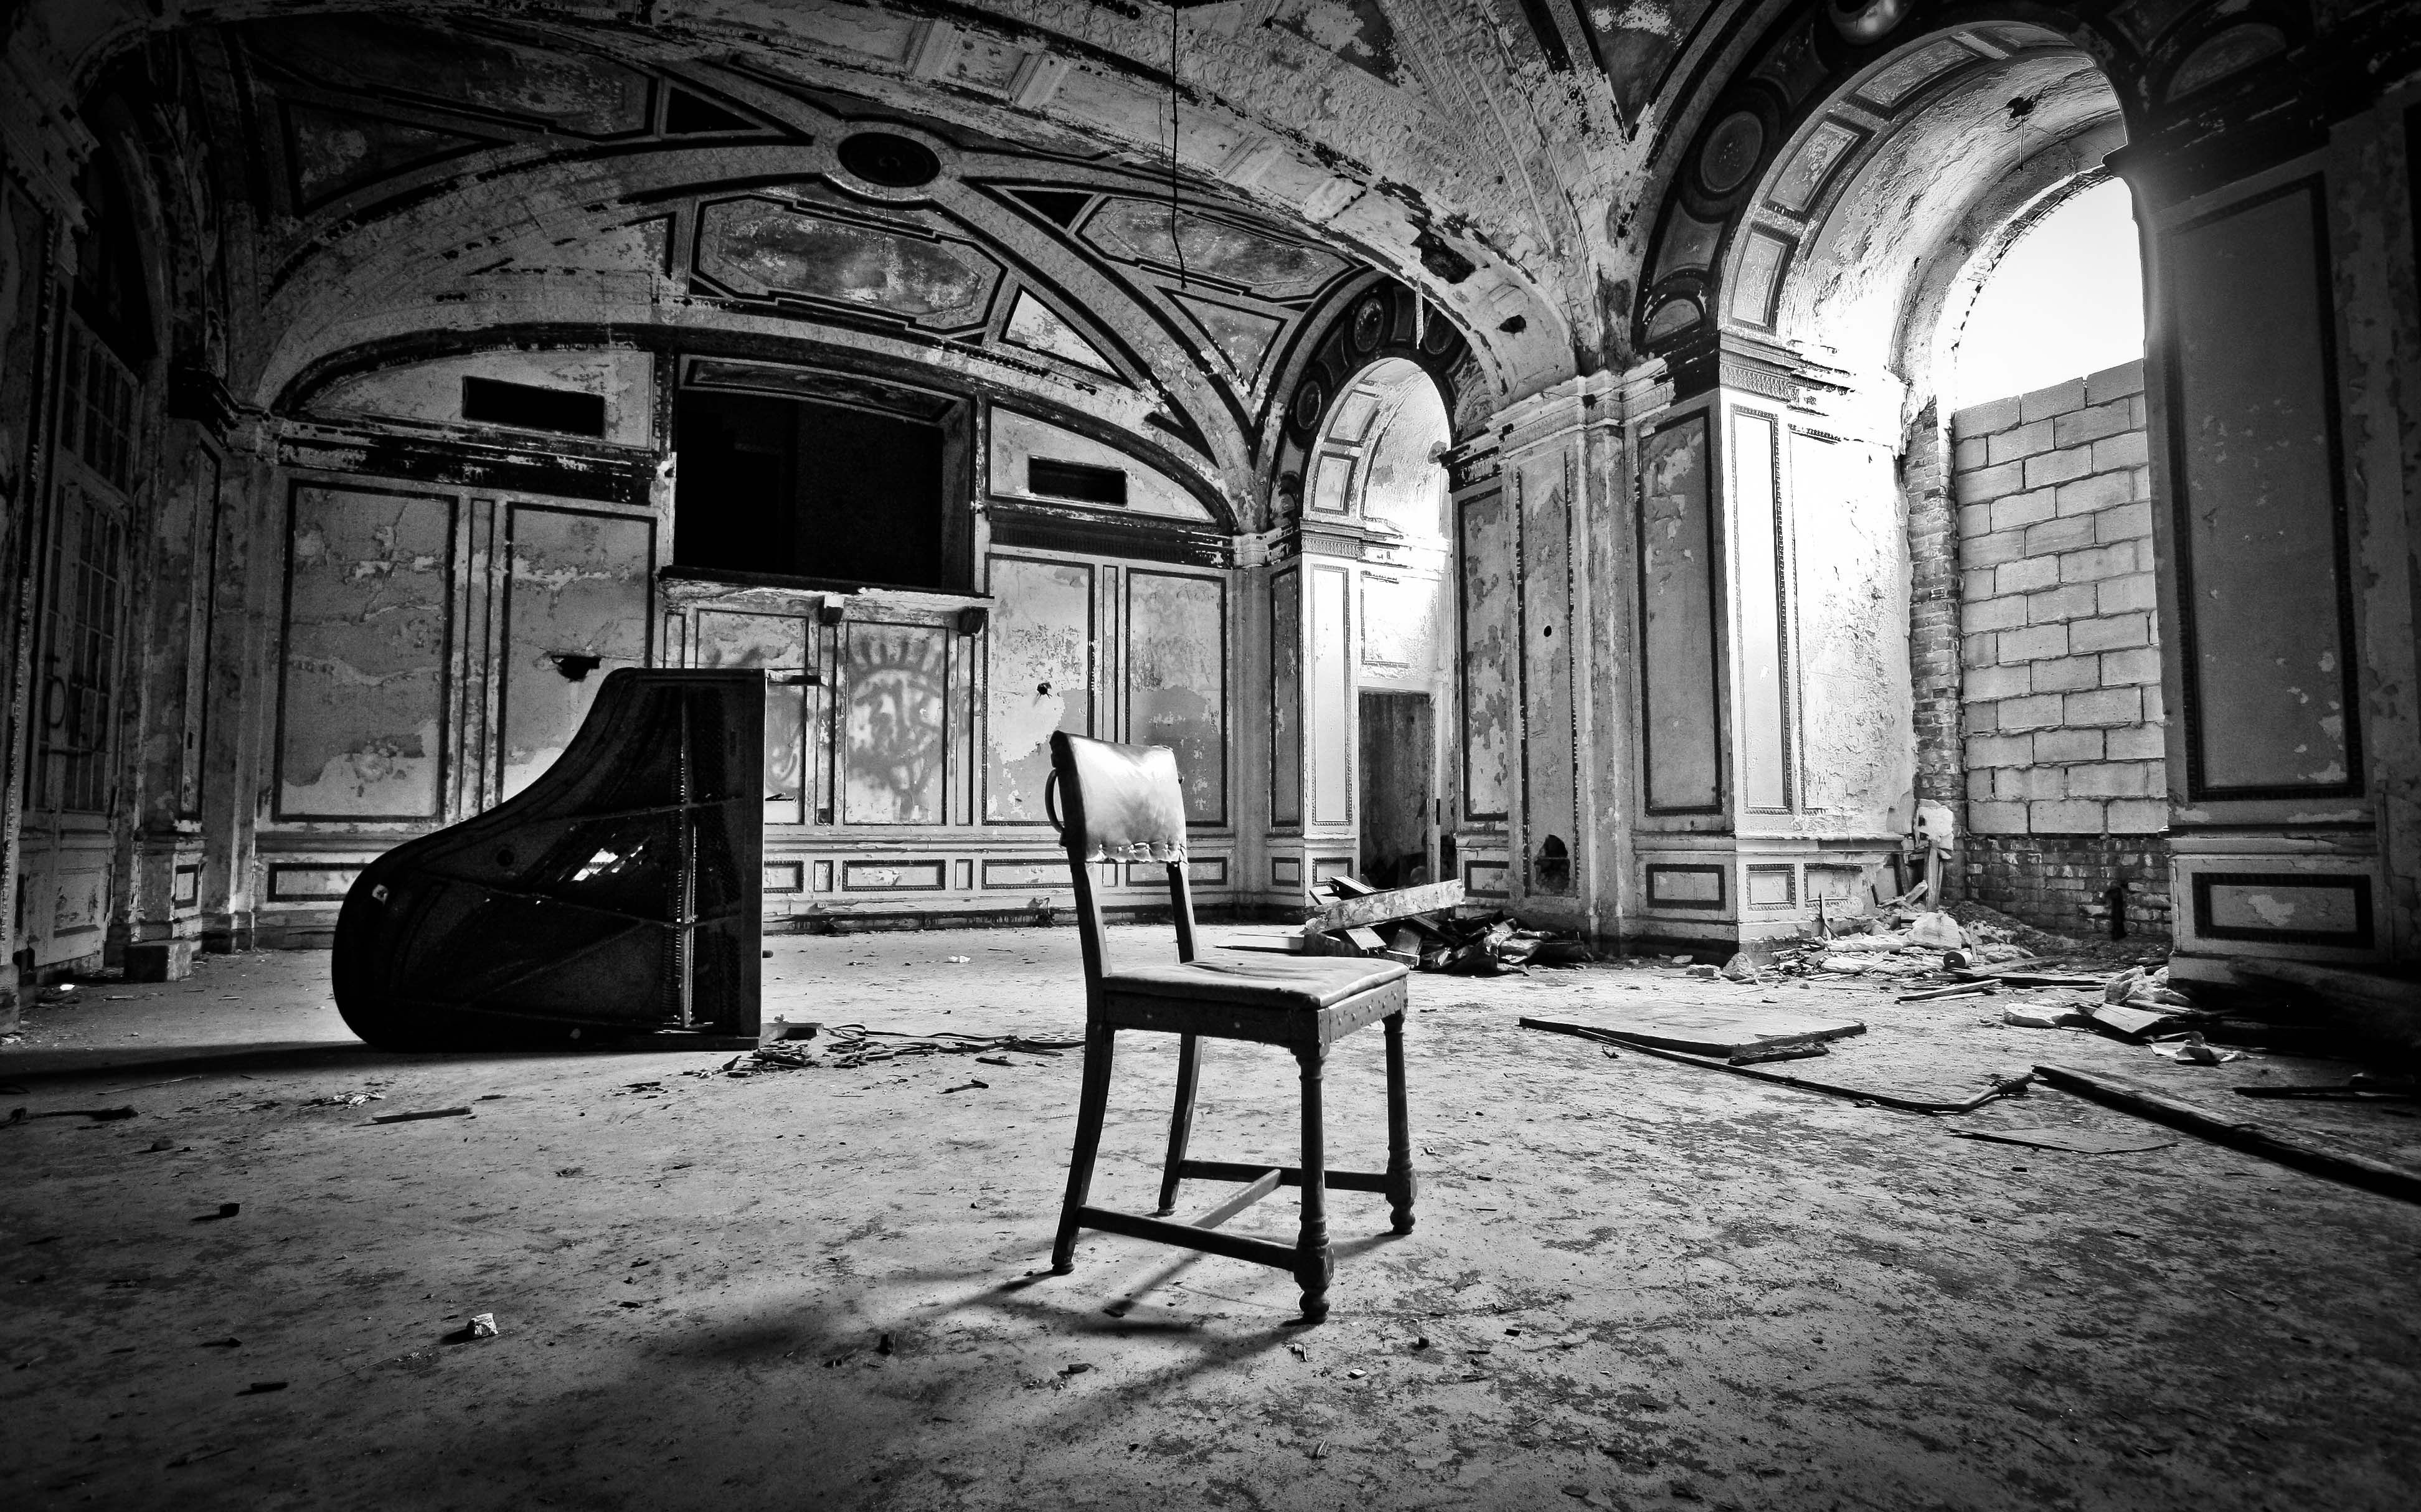 I ended up processing this image in black and white because I liked the antiquated and dramatic feel it gave this abandoned hotel lobby.